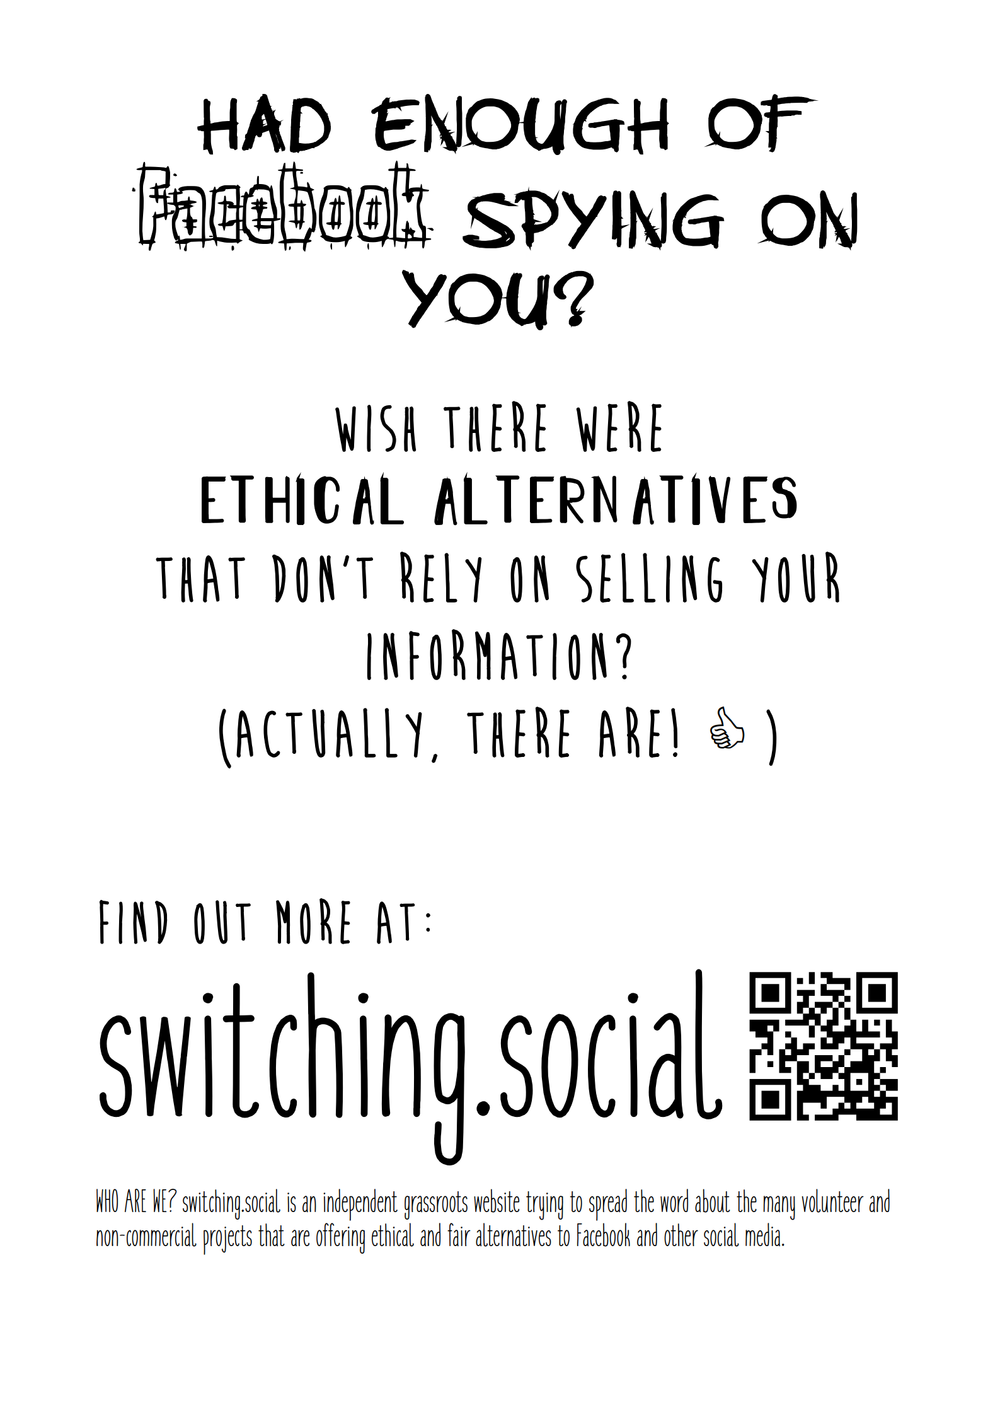 switching.social.png